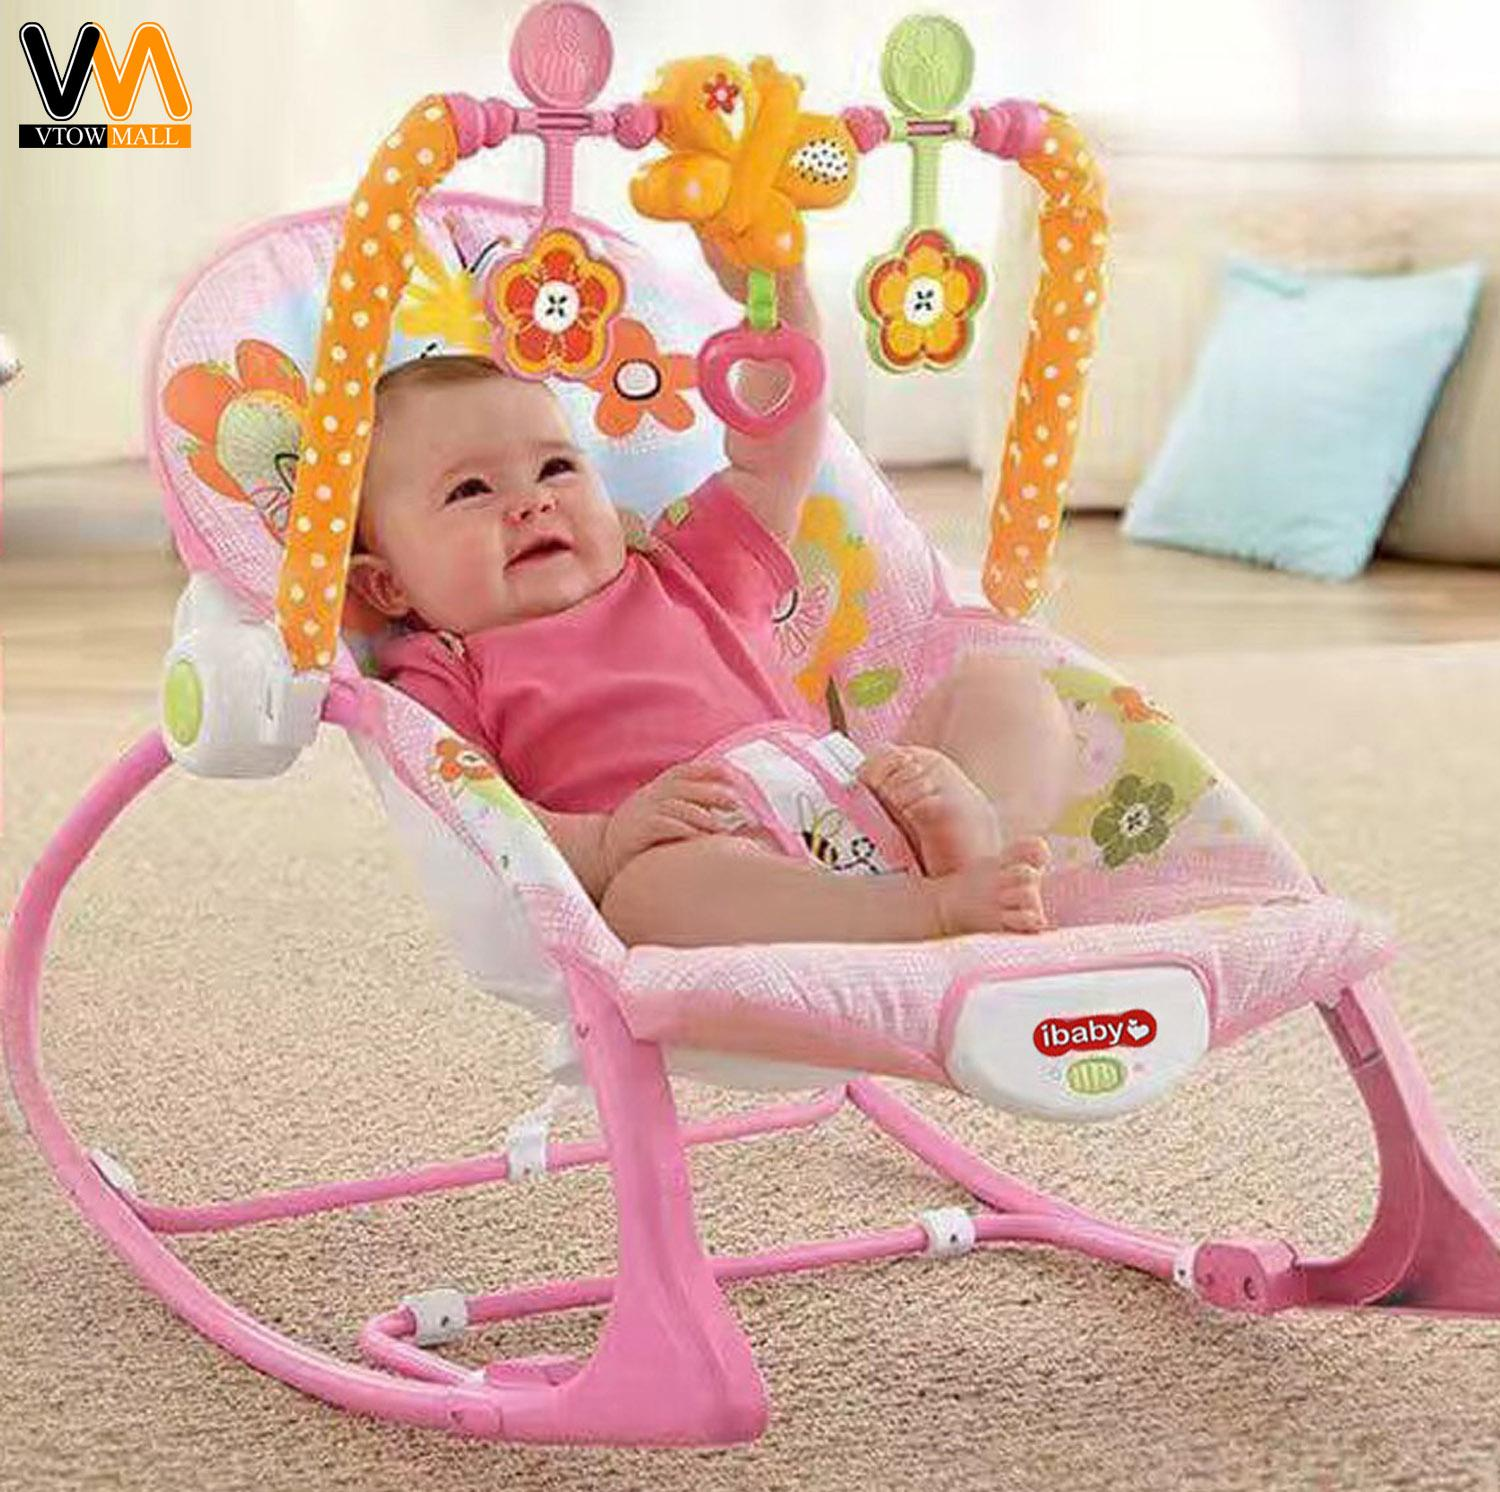 baby bouncers for sale - bouncing stroller online brands, prices